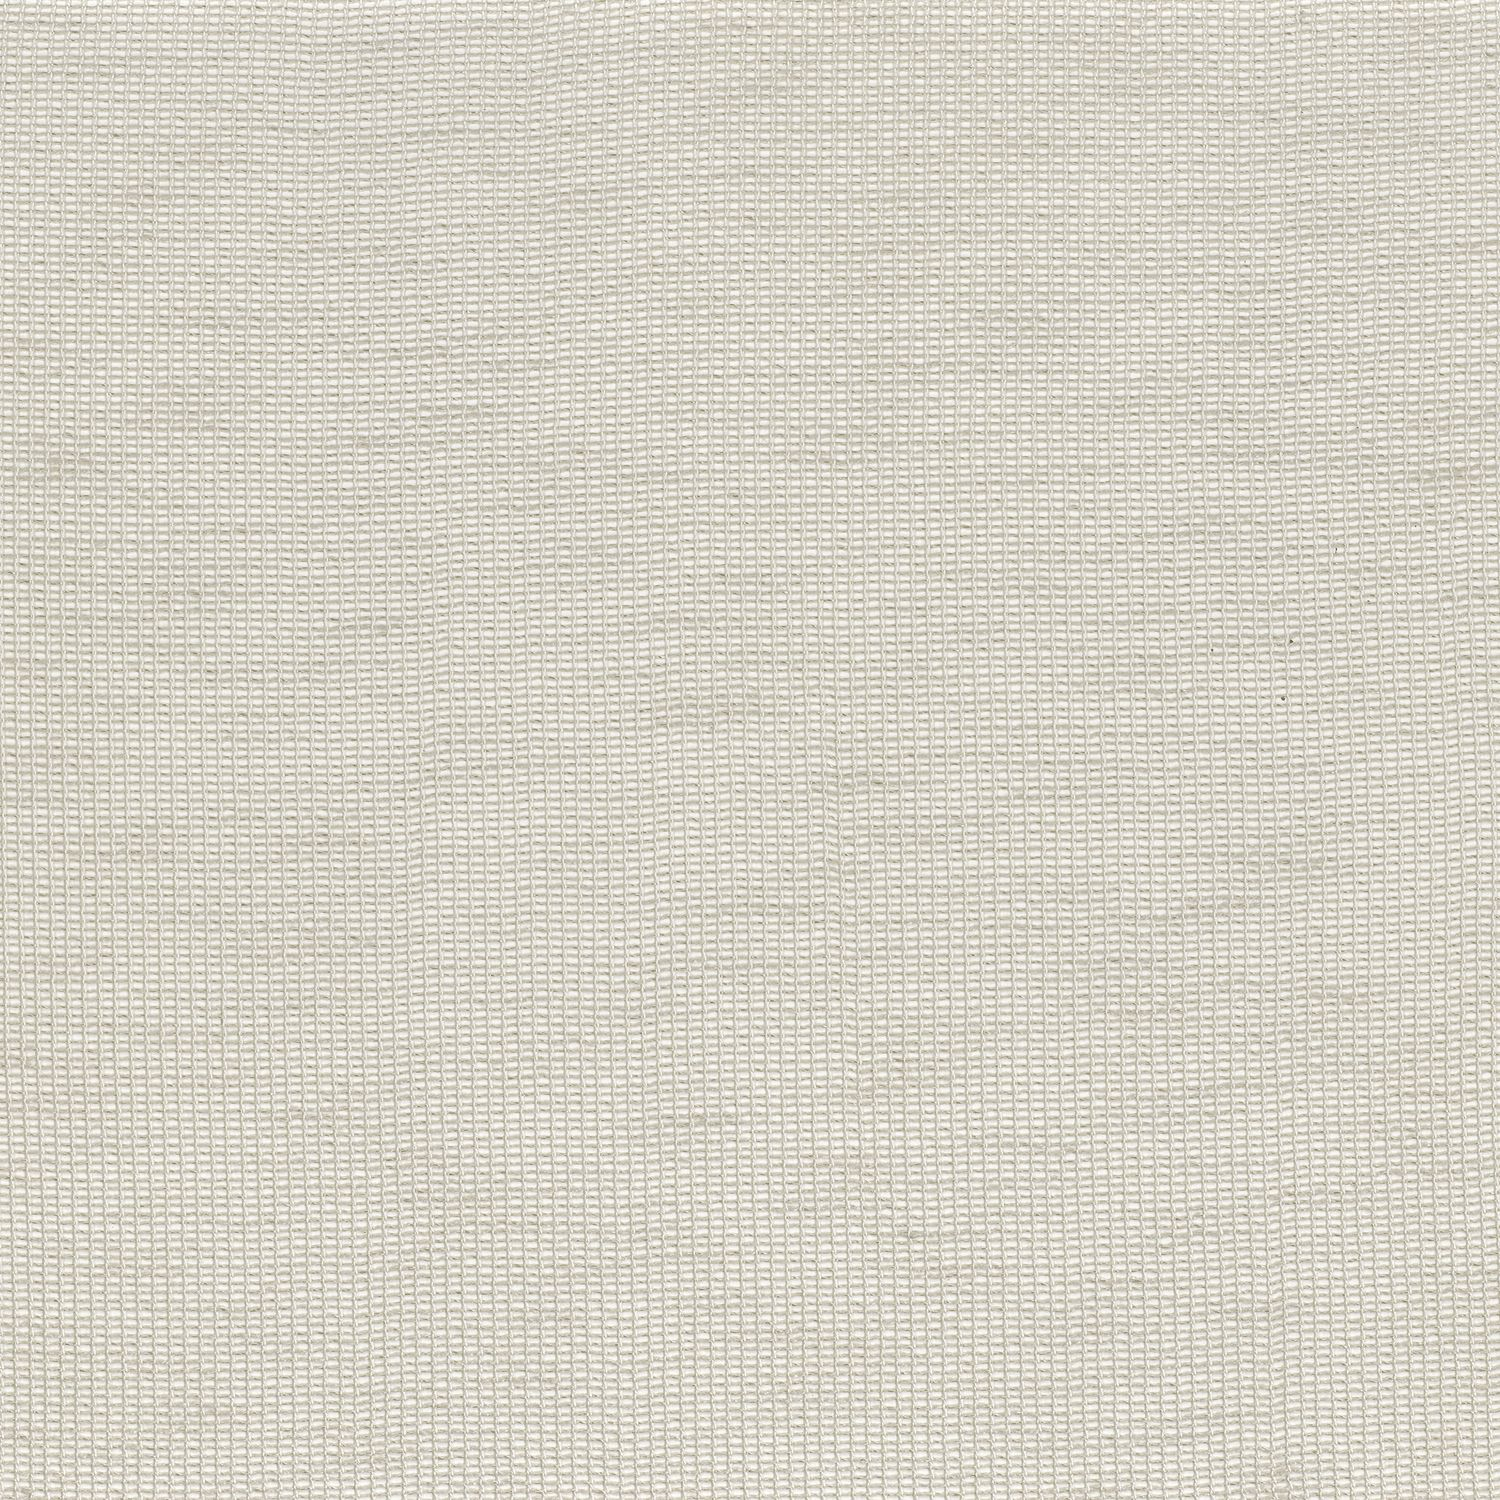 40340106 Collection - Delicatesse Fabric